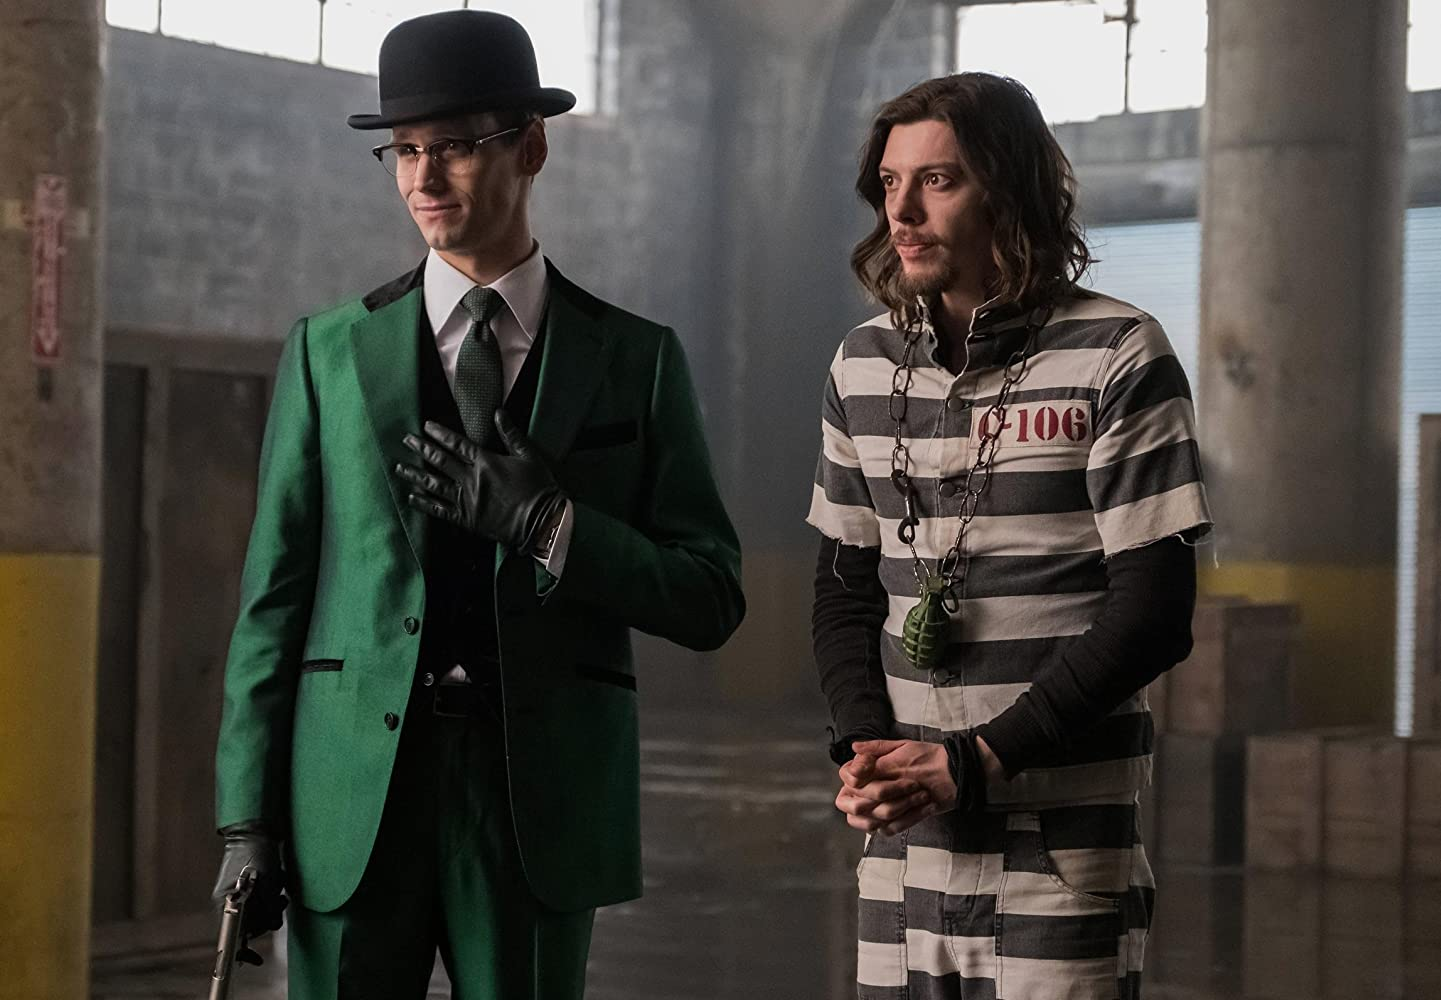 Gotham S03E14 – Mad City: The Gentle Art of Making Enemies